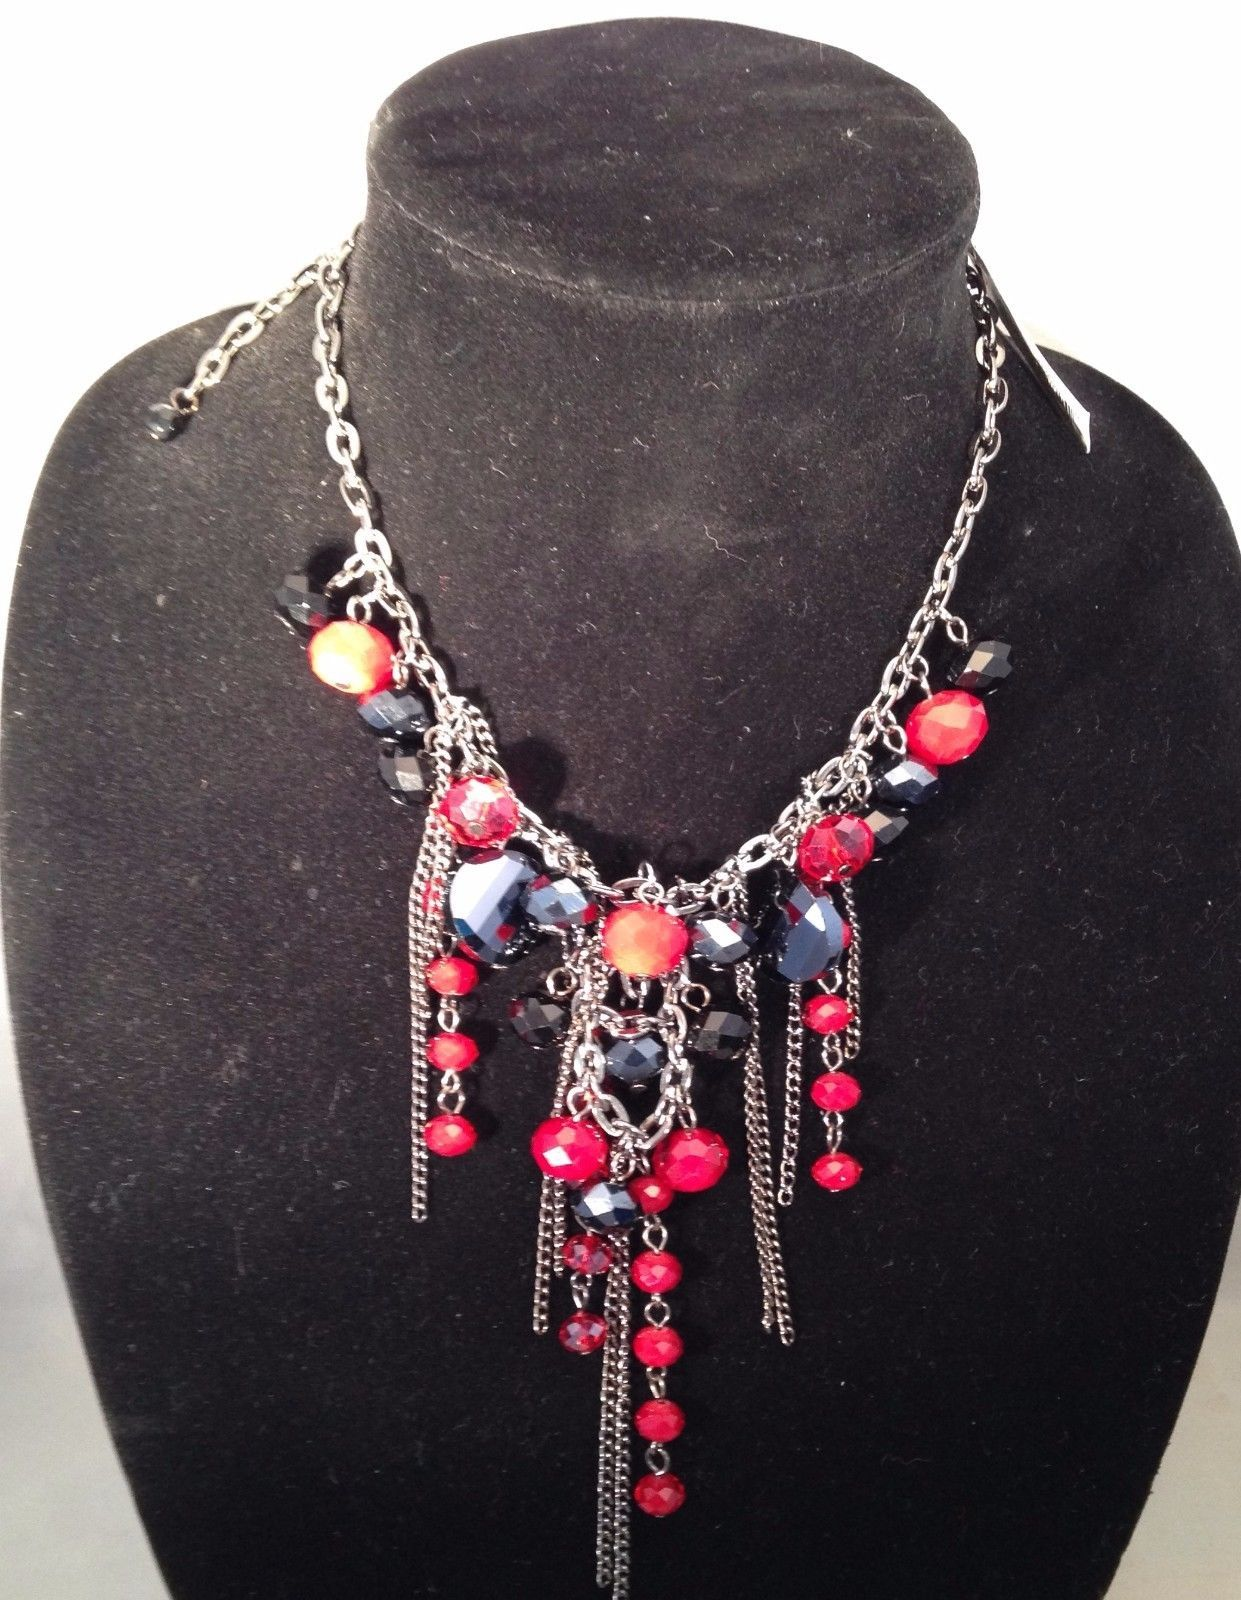 New Cookie Lee Necklace w/ Red and Purple Faceted Crystals & Chains